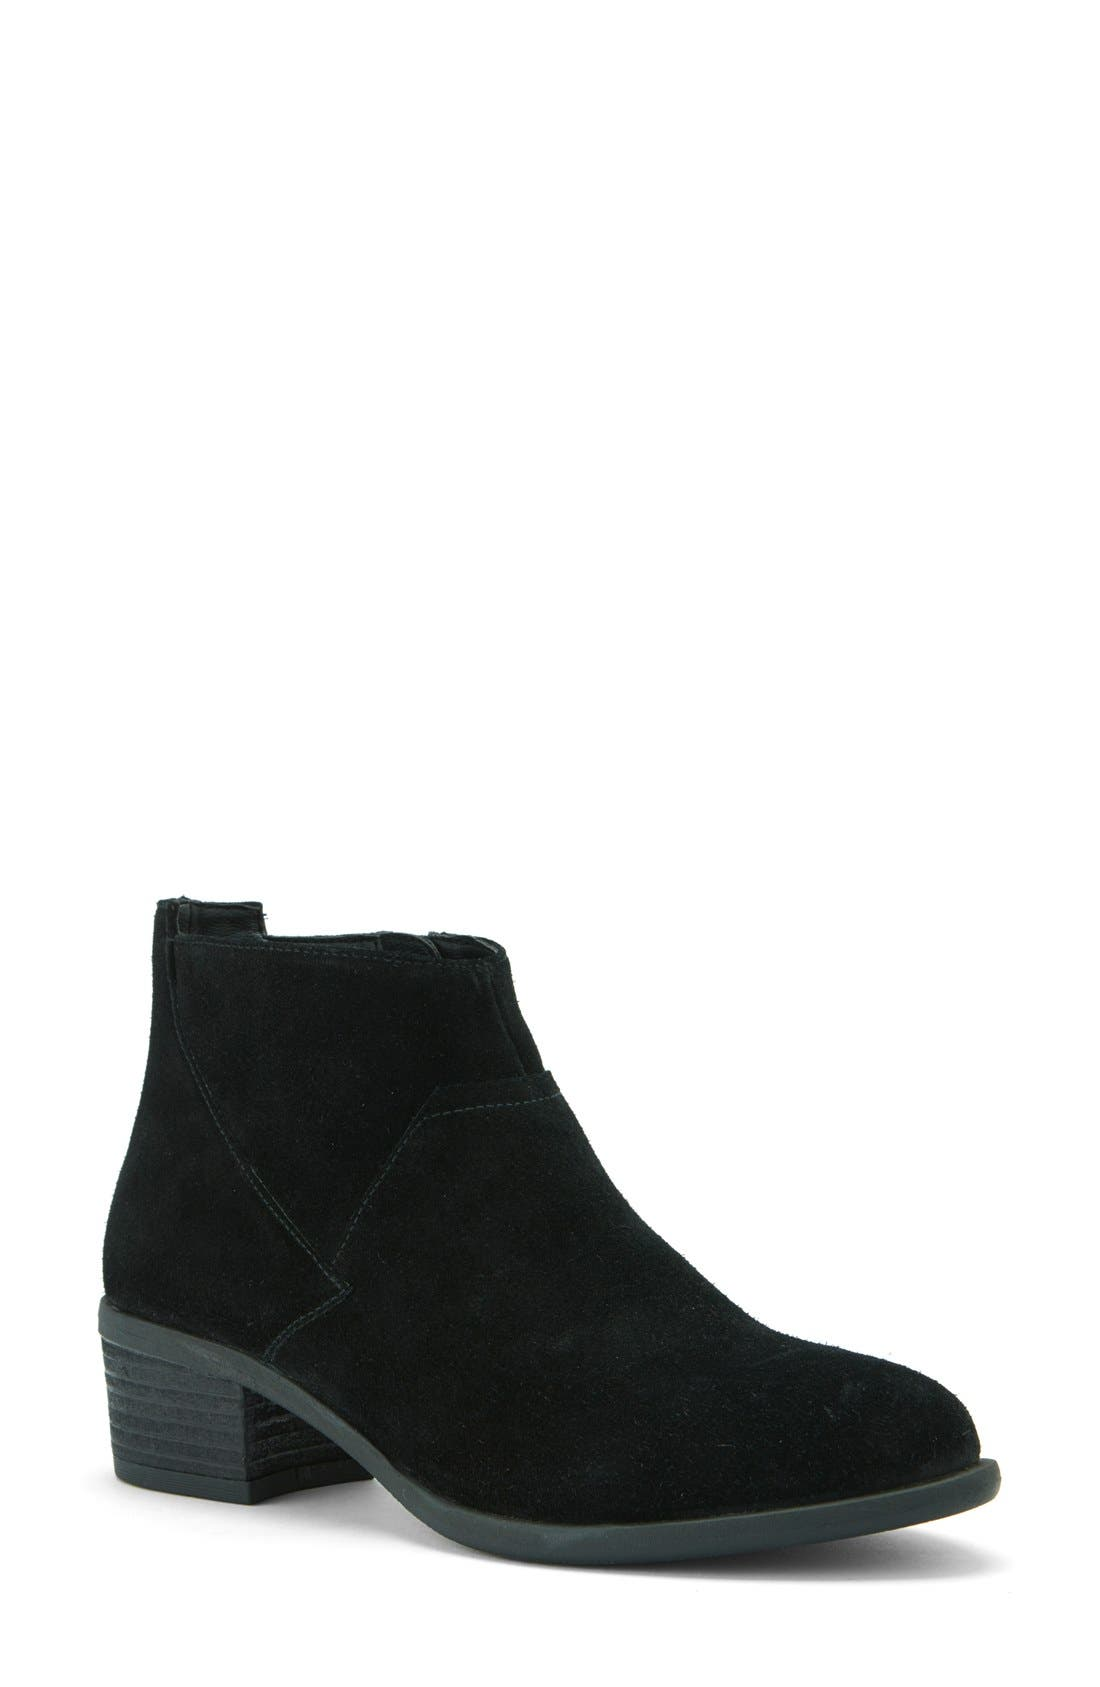 'Maddie' Waterproof Ankle Boot,                             Main thumbnail 1, color,                             006